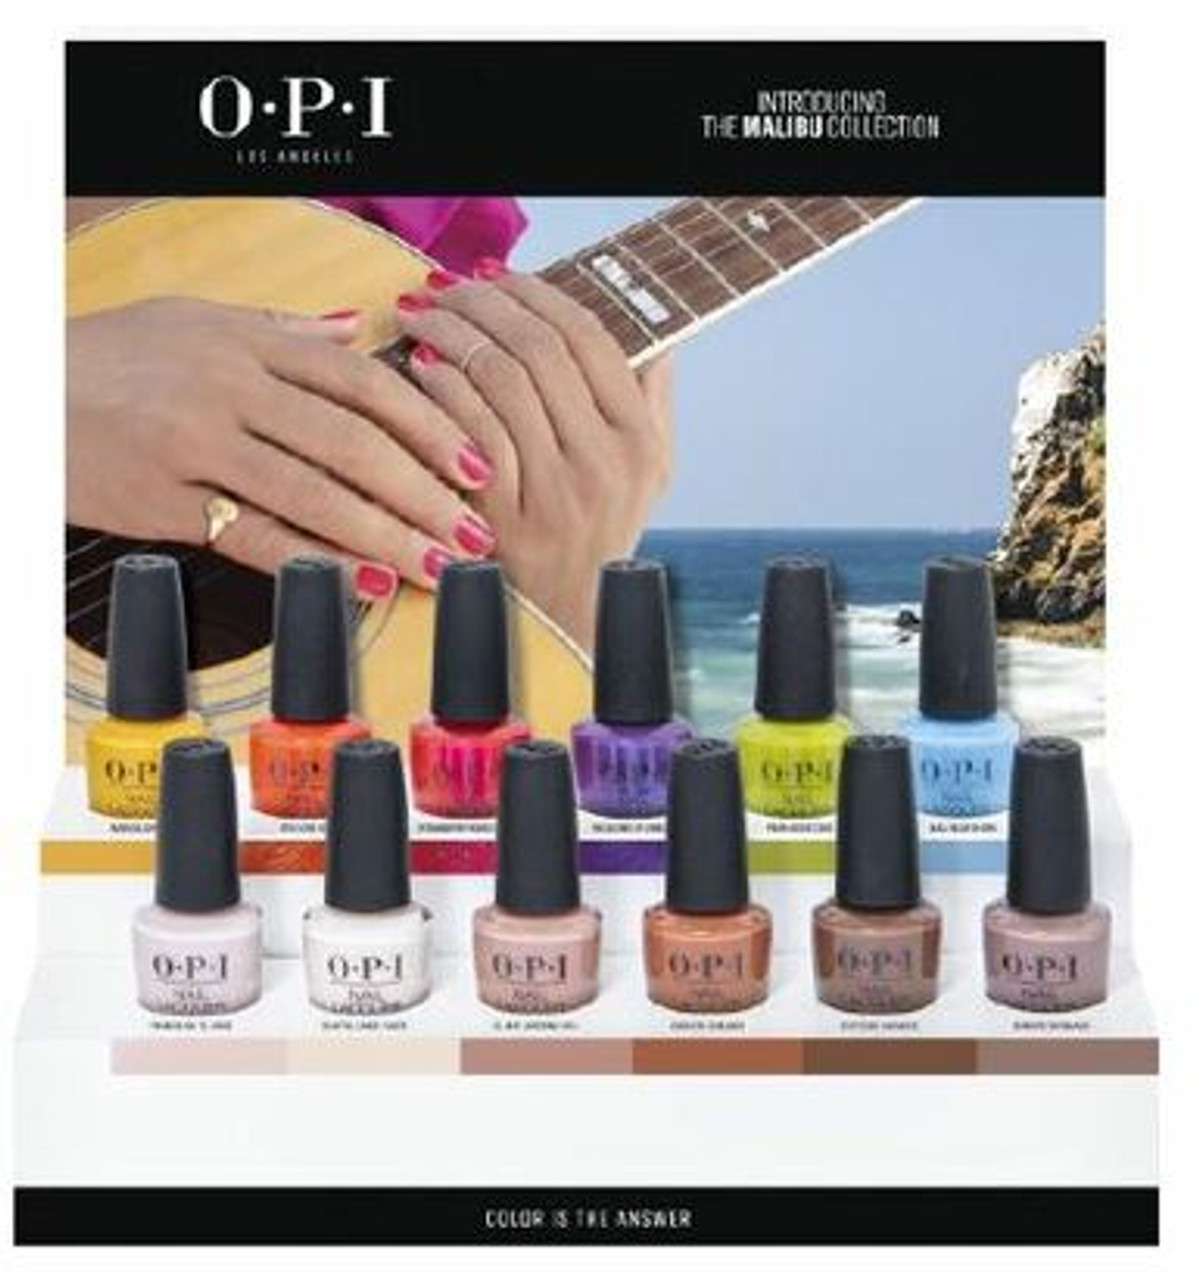 OPI Classic Nail Lacquer SUMMER 2021 Malibu Collection - 12 Chipboard Display